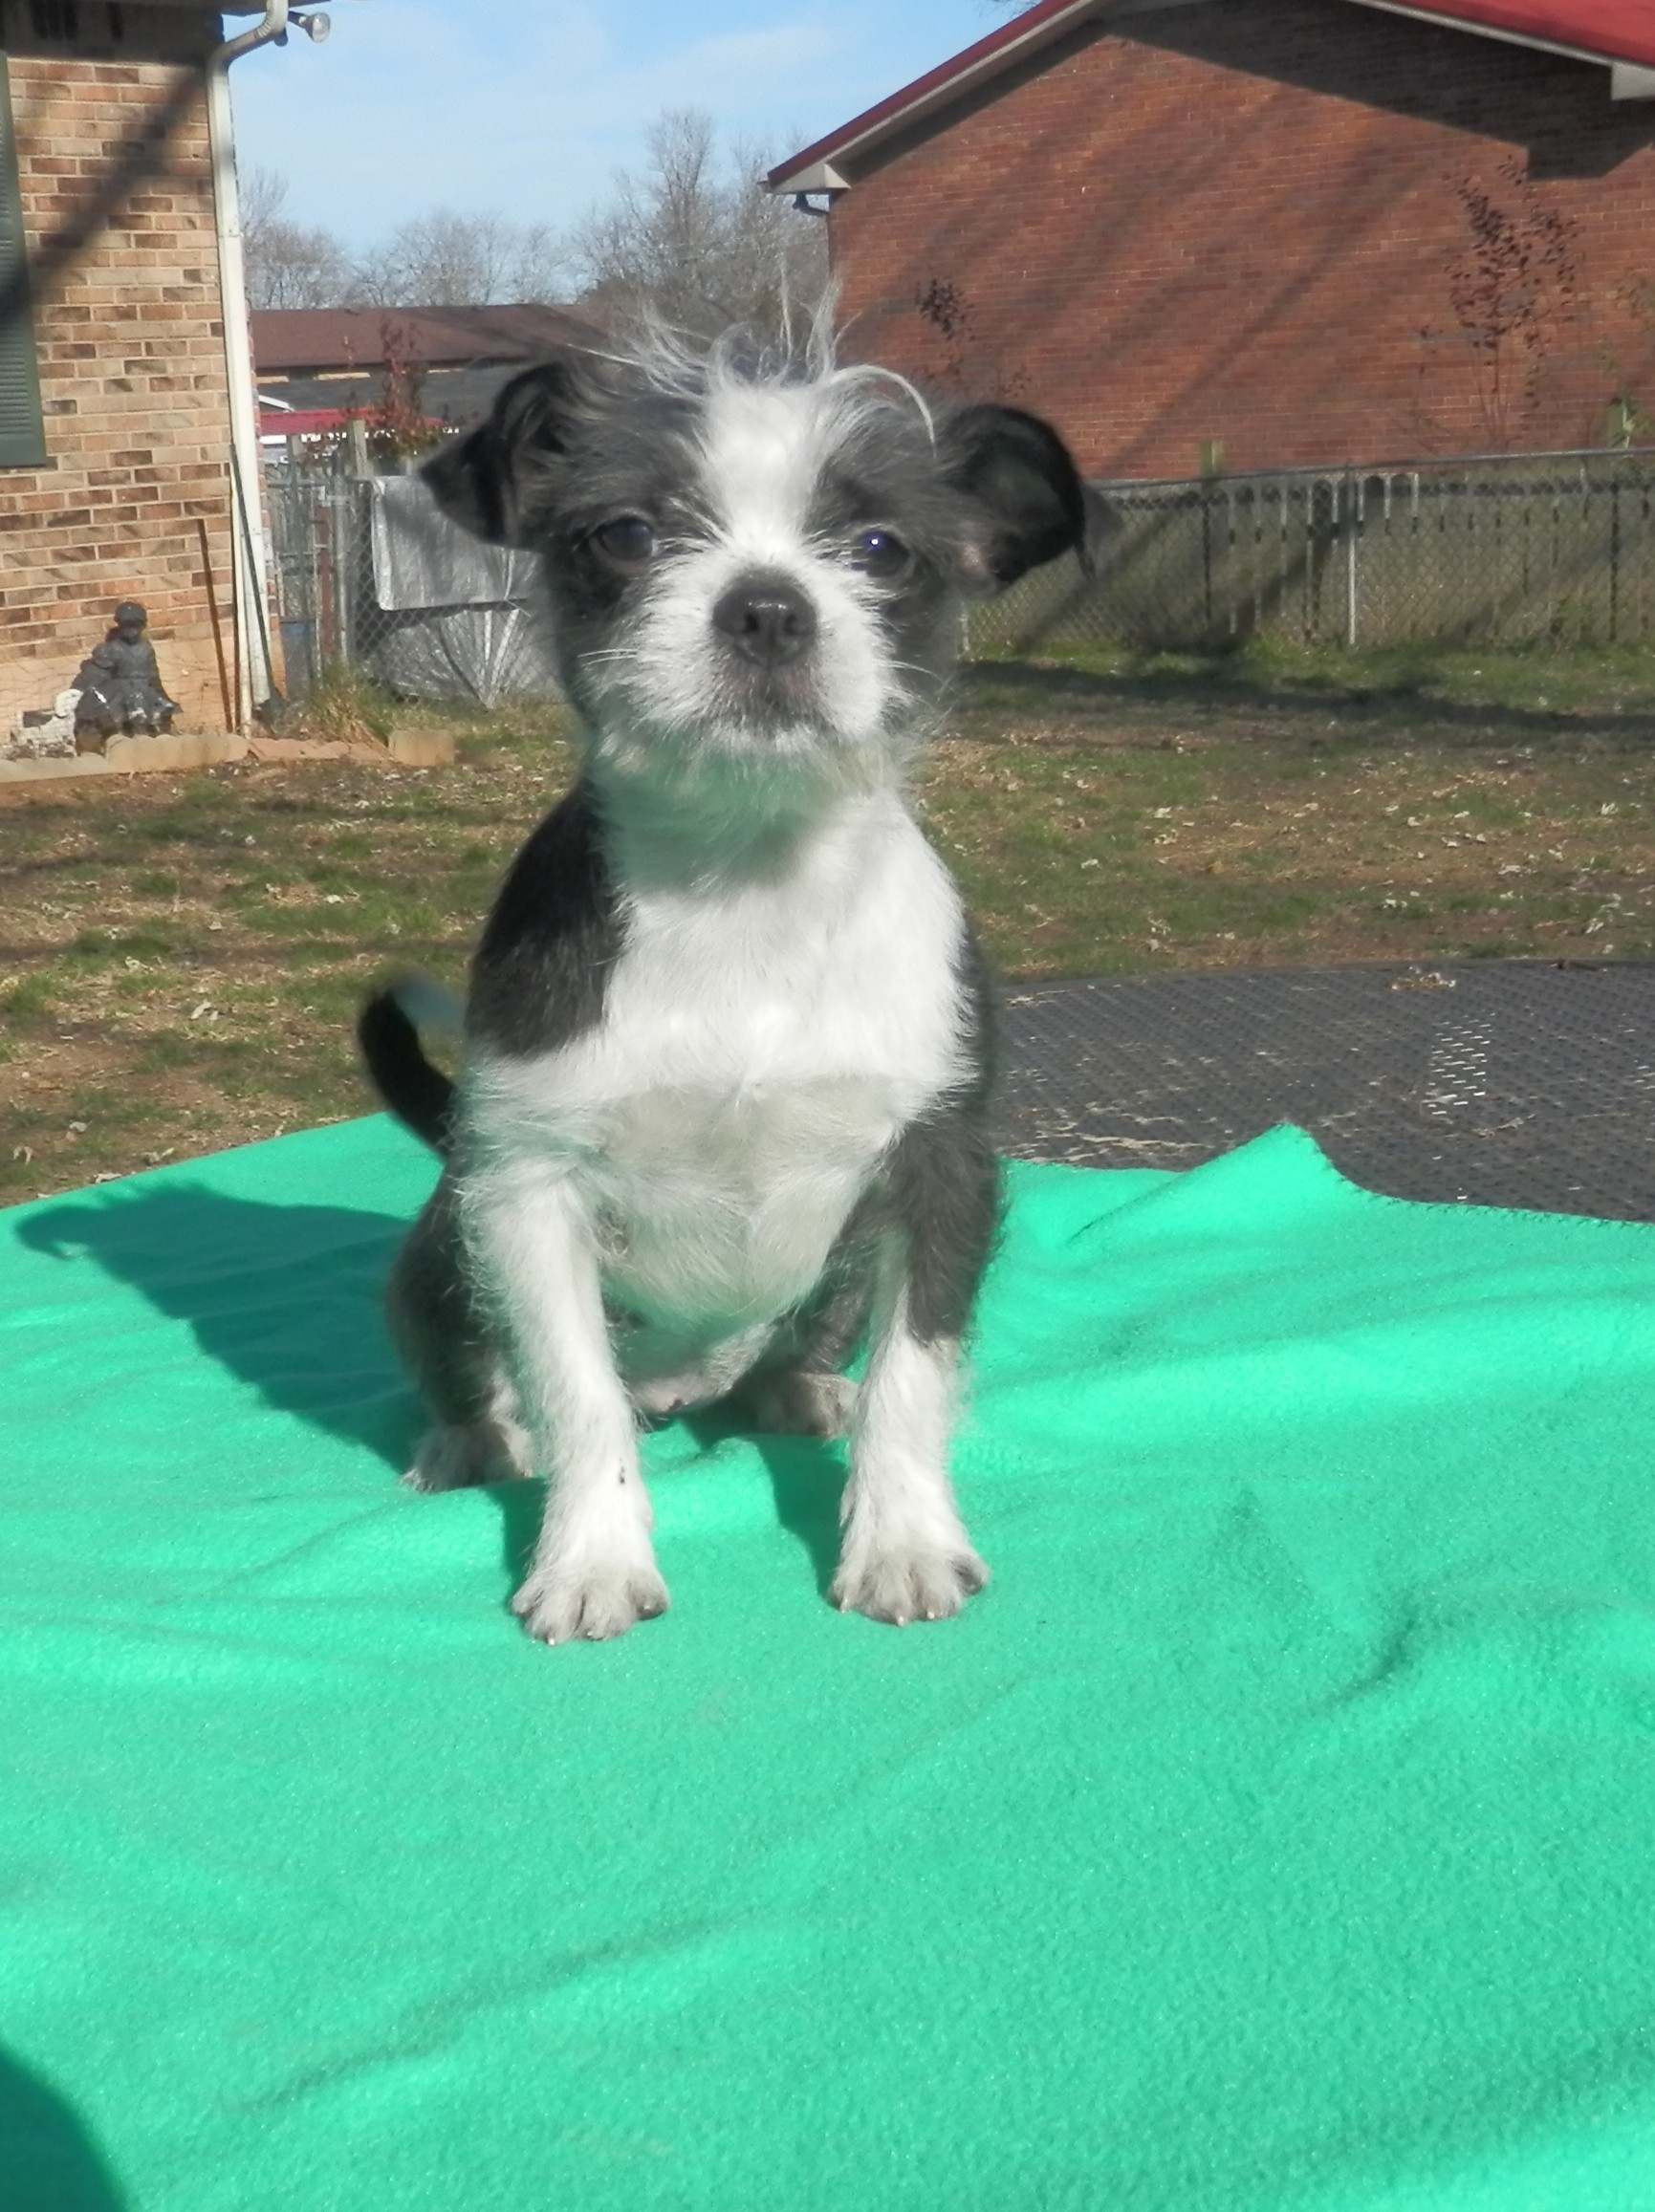 Clarksville, TN - Boston Terrier. Meet Gracie-Marie a Dog for Adoption.